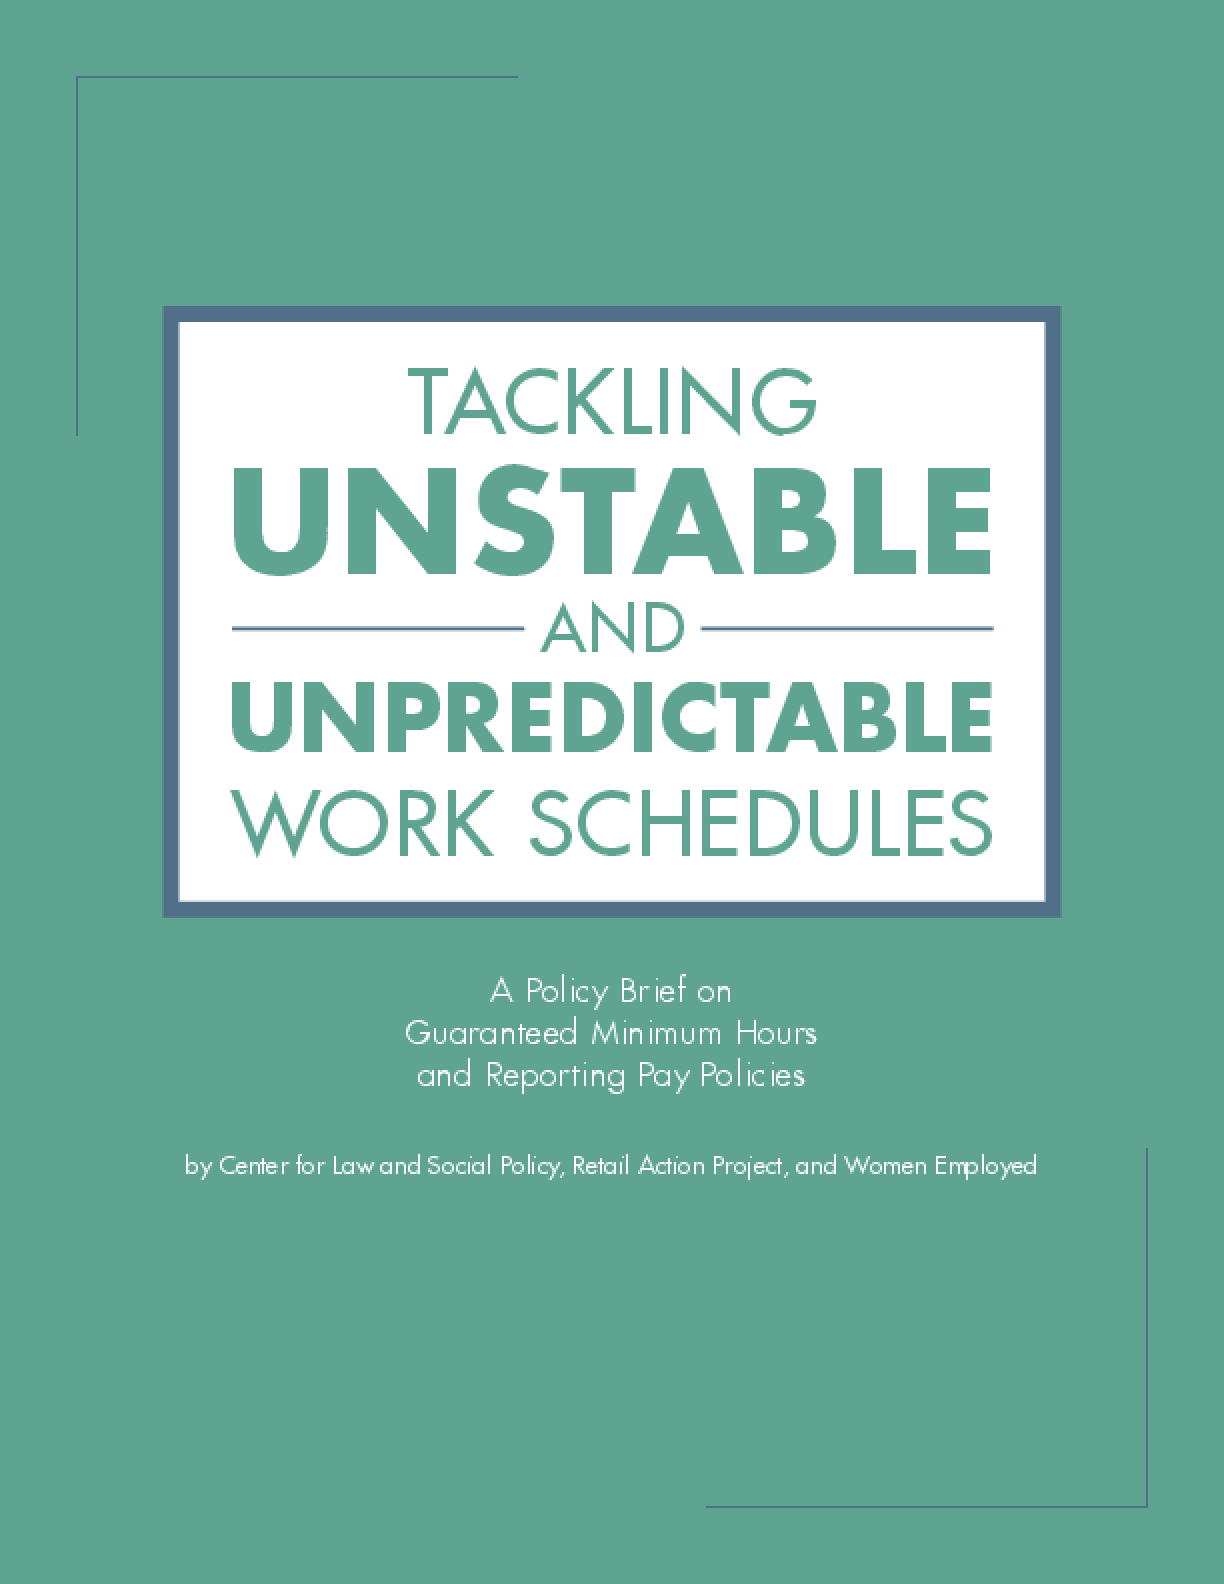 Tackling Unstable and Unpredictable Work Schedules